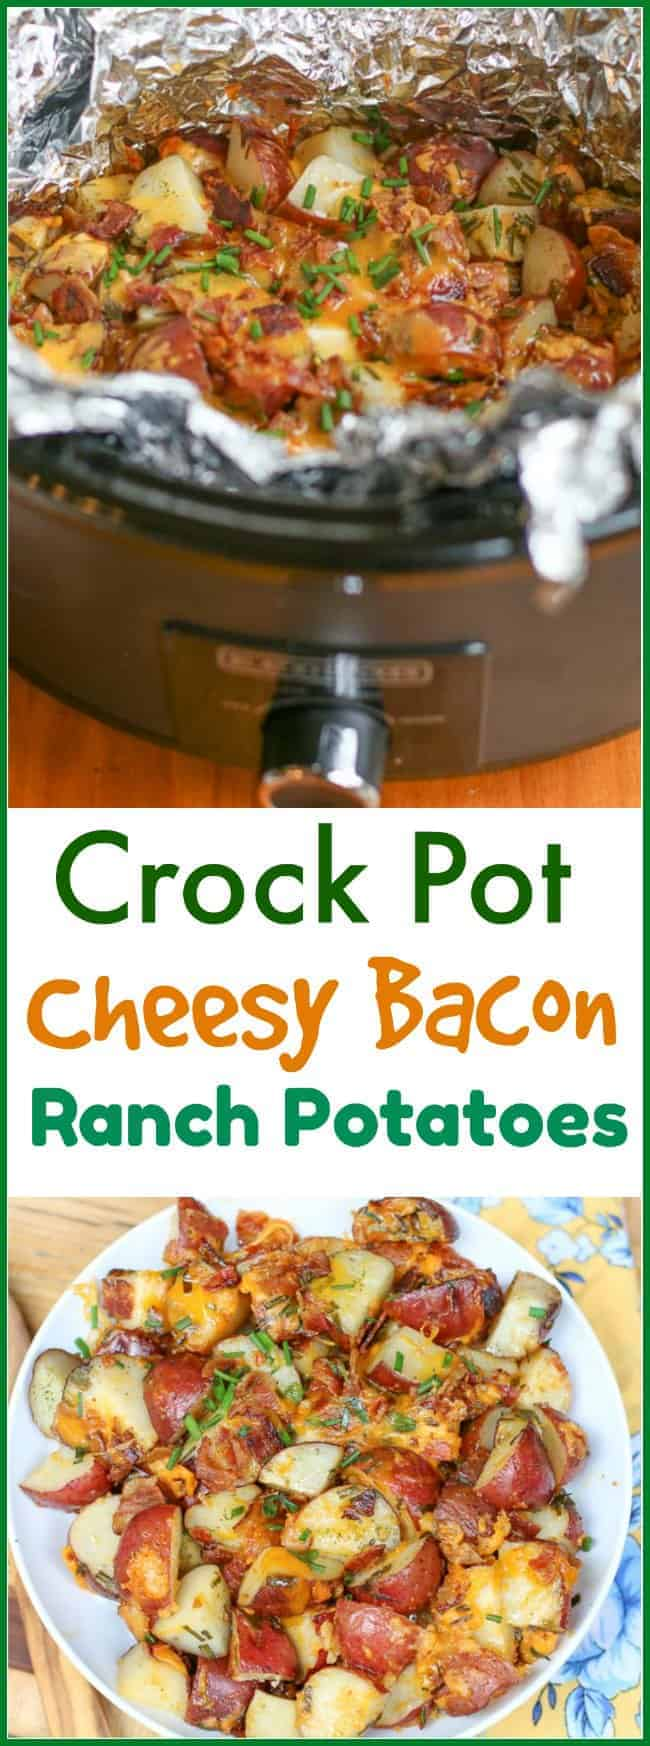 Bacon. Cheese. Potatoes. Need I say more? This Easy #CrockPot Cheesy Bacon #RanchPotatoes recipe only requires a few ingredients and makes a delicious side dish that your entire family will love. @potatoGoodness #ad #Potatoes #CLVR